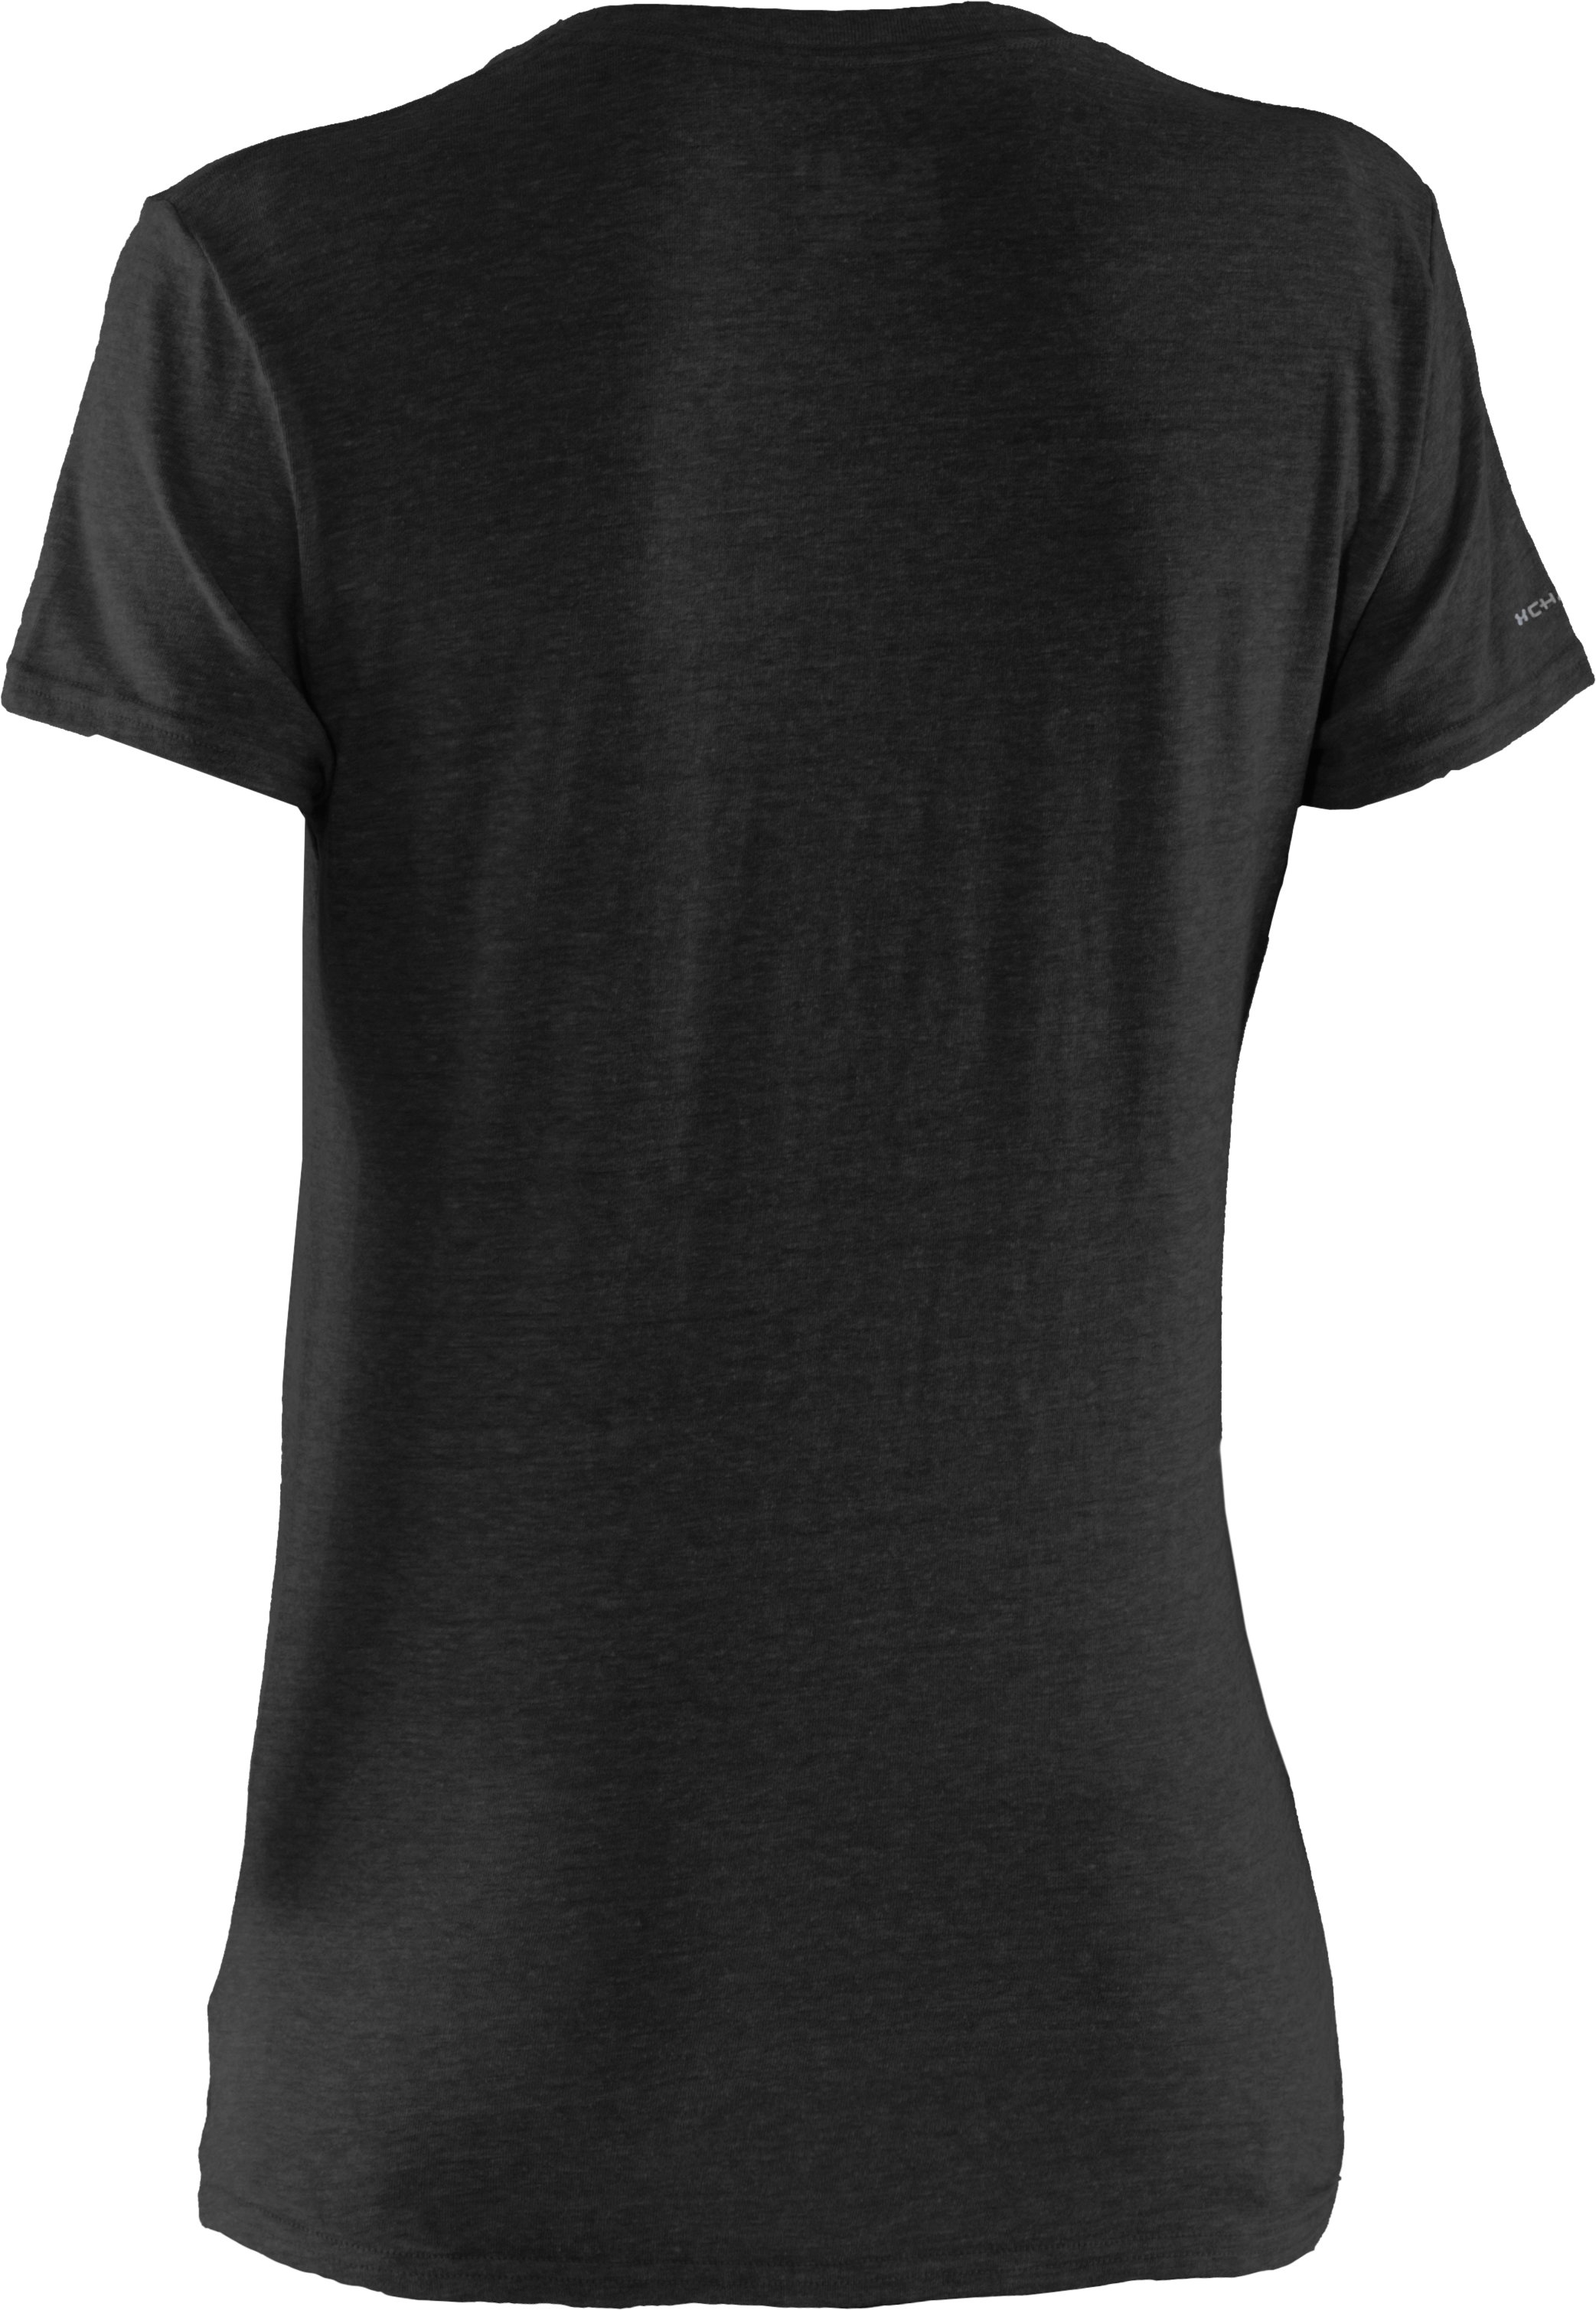 Women's Charged Cotton® Undeniable T-Shirt, Black , undefined